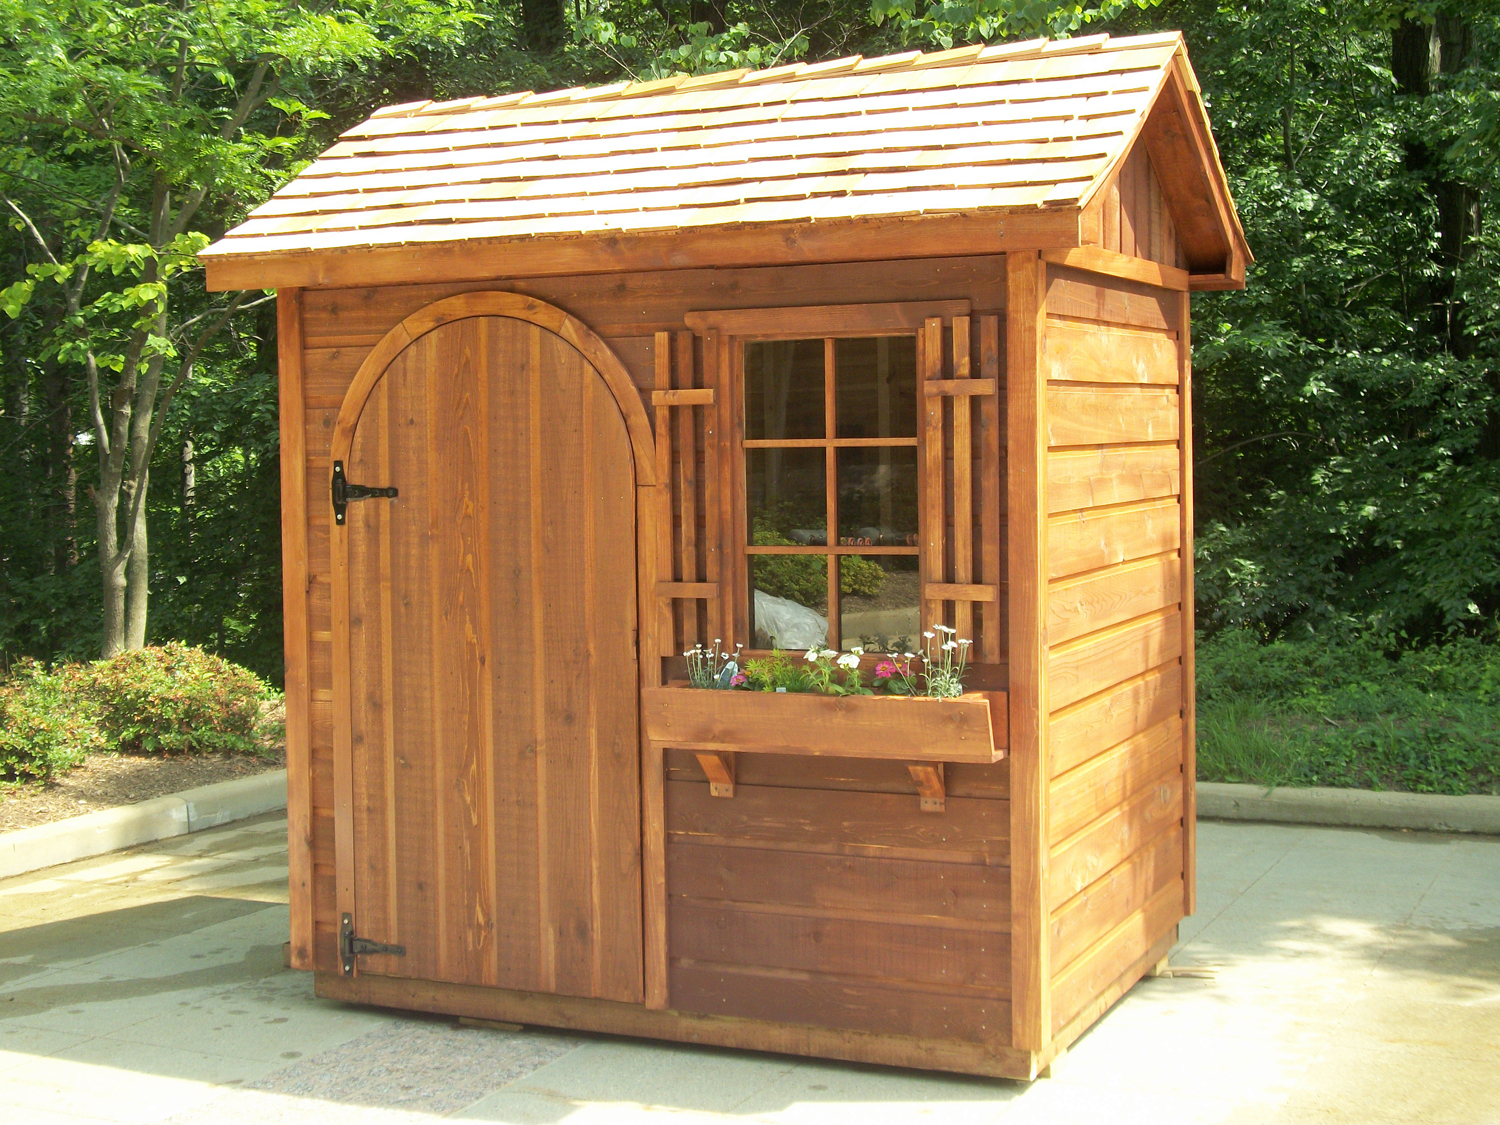 Diy garden shed design quick woodworking projects for Garden shed plans